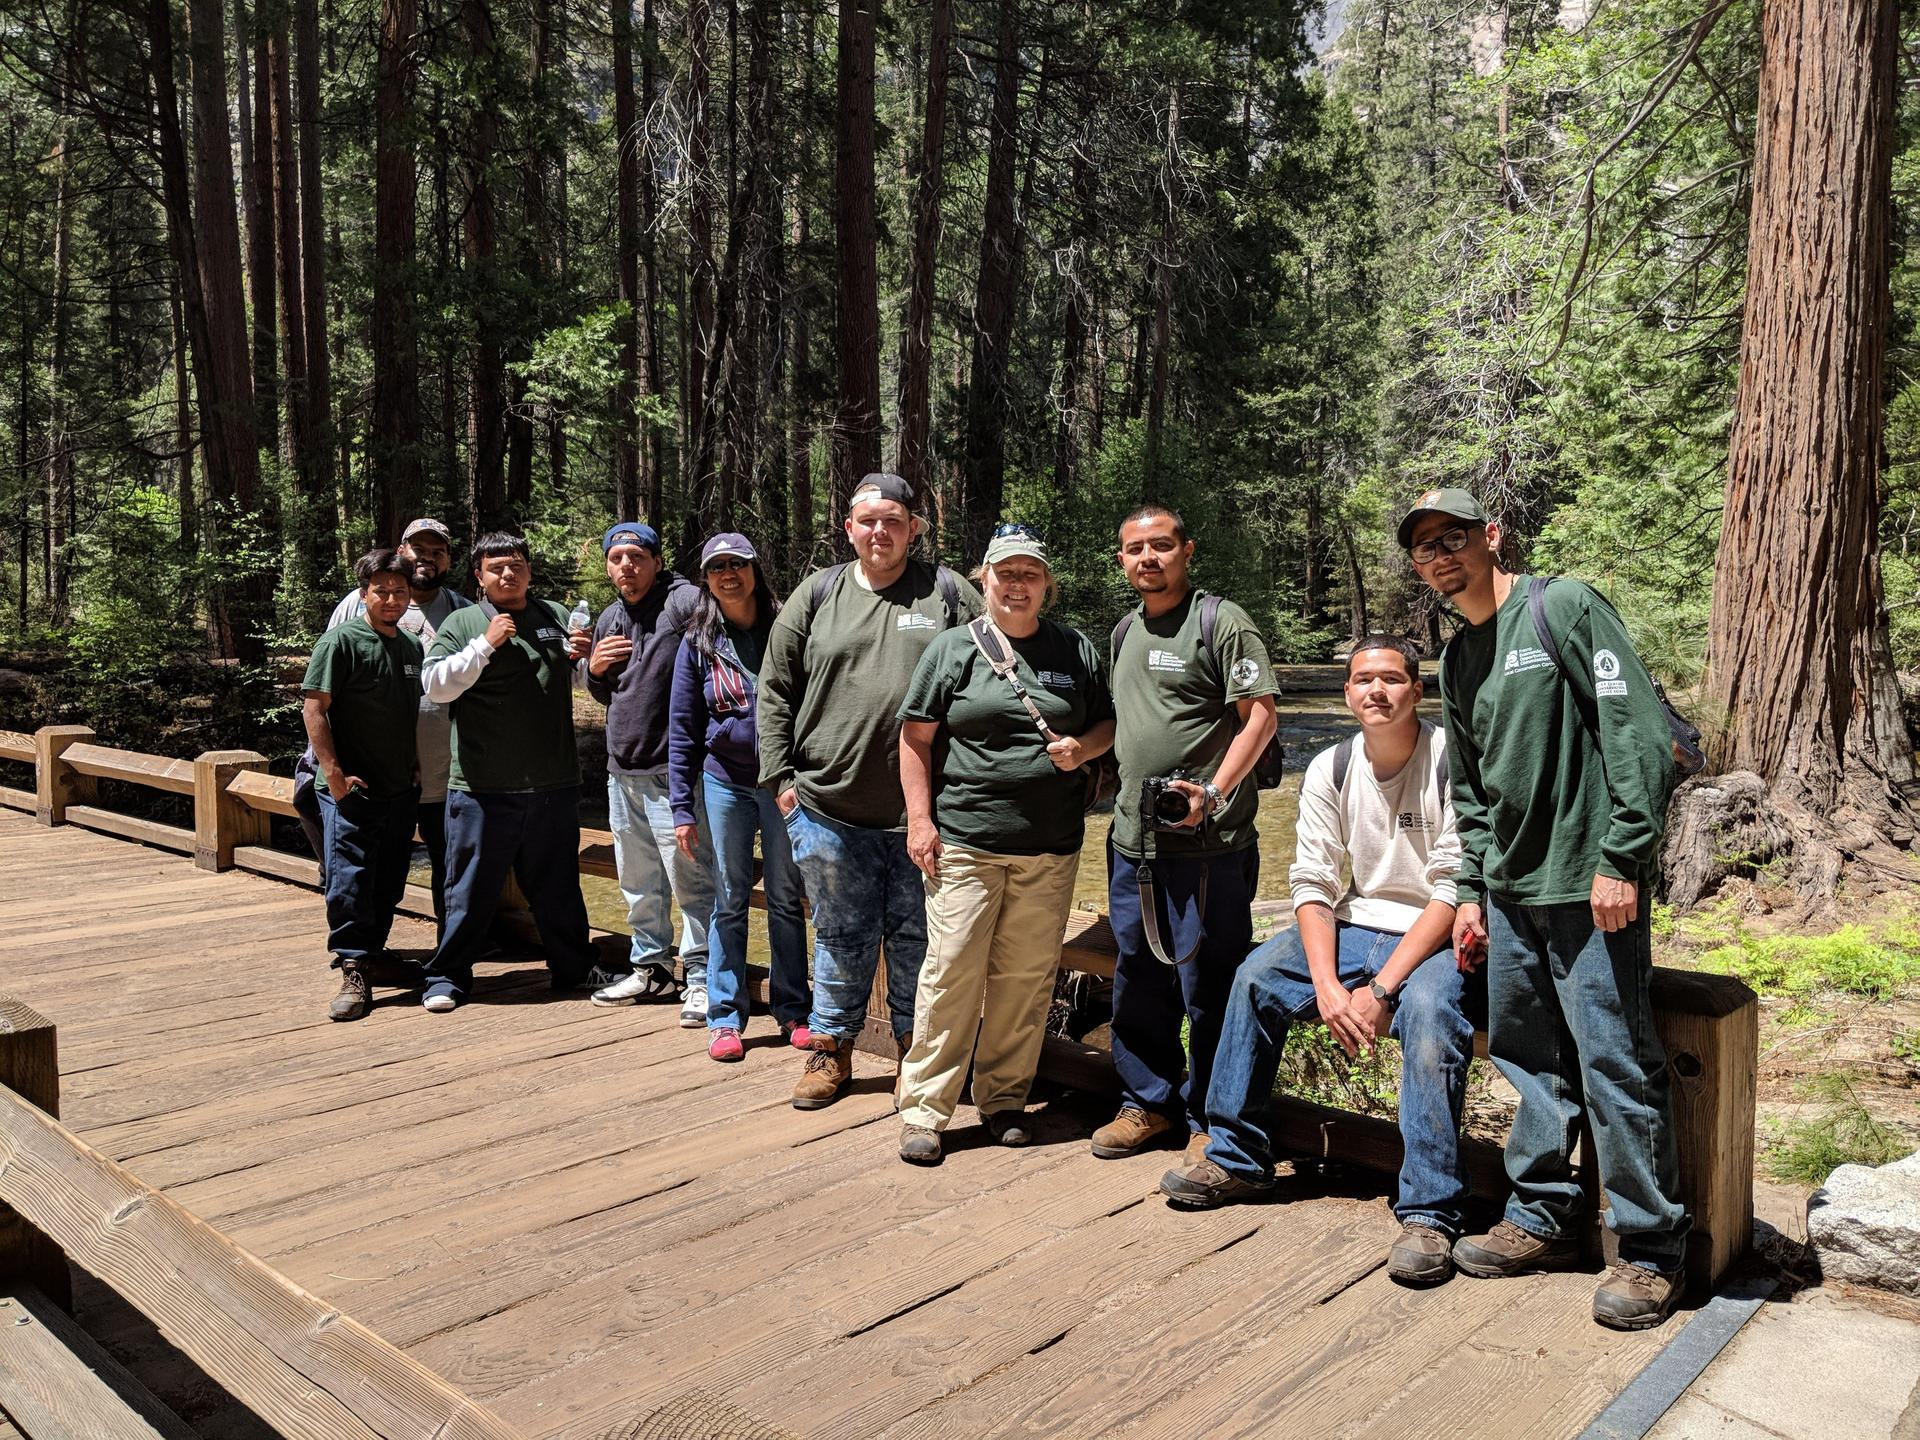 Fresno students at Yosemite National Park